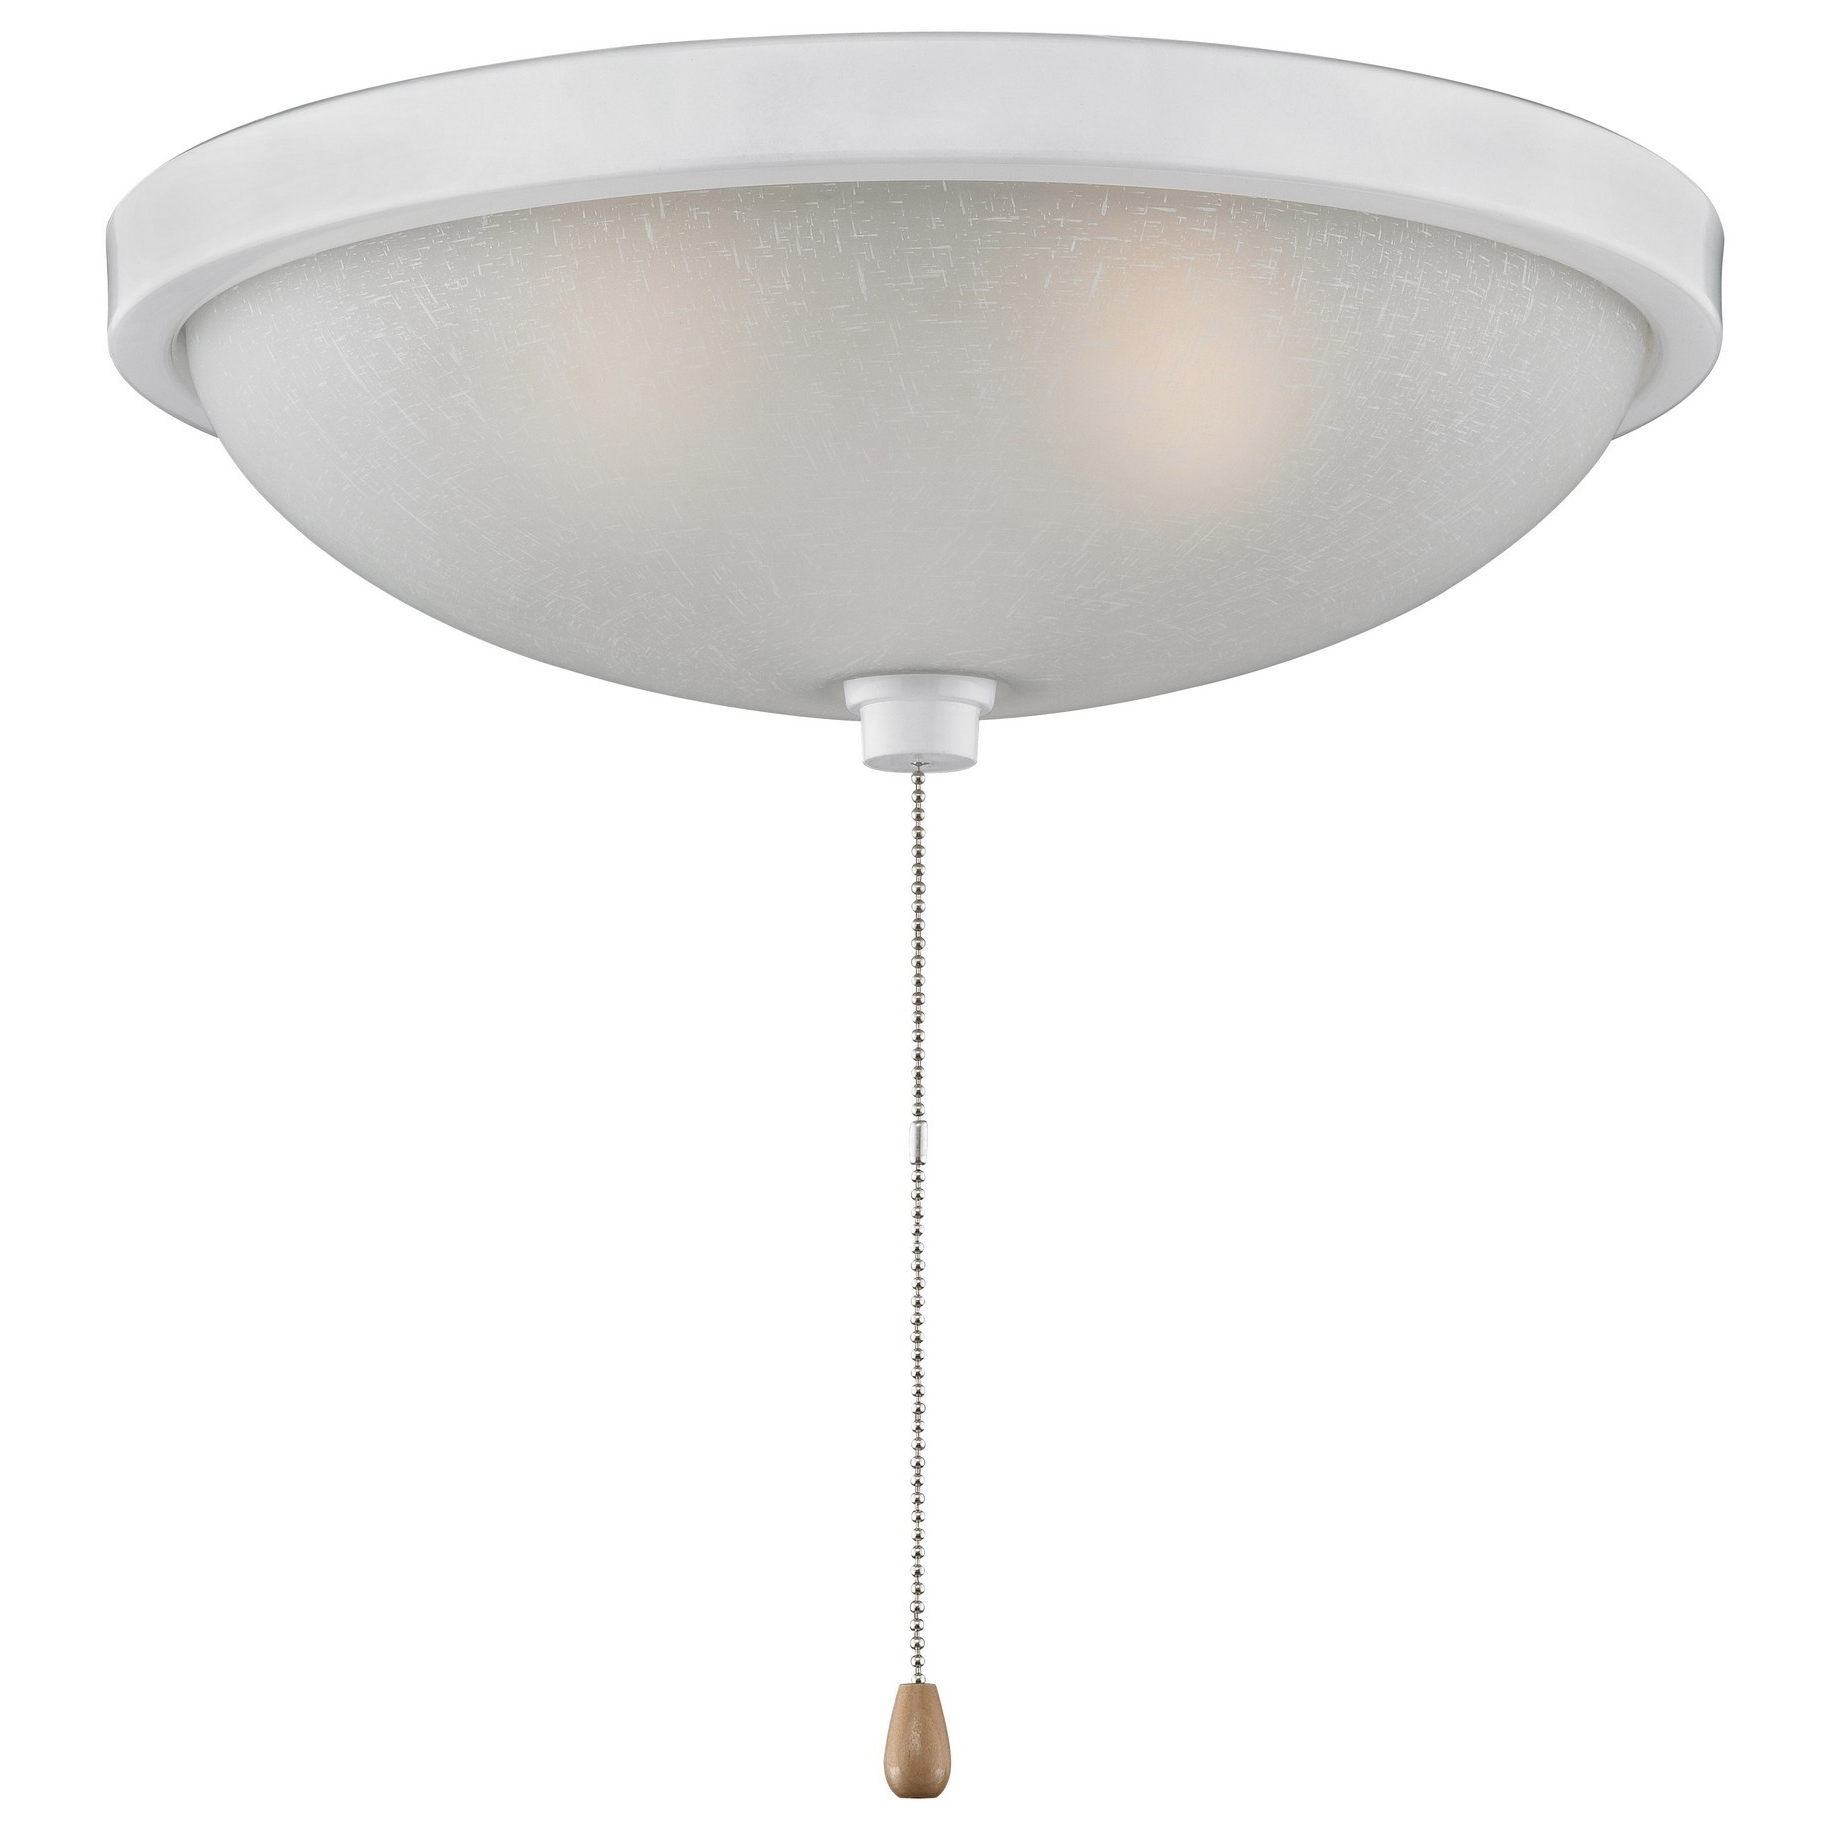 Outdoor Ceiling Fans With Pull Chains Intended For Widely Used Pull Chain Ceiling Light Best With Switch On Outdoor Fans Fan (View 18 of 20)